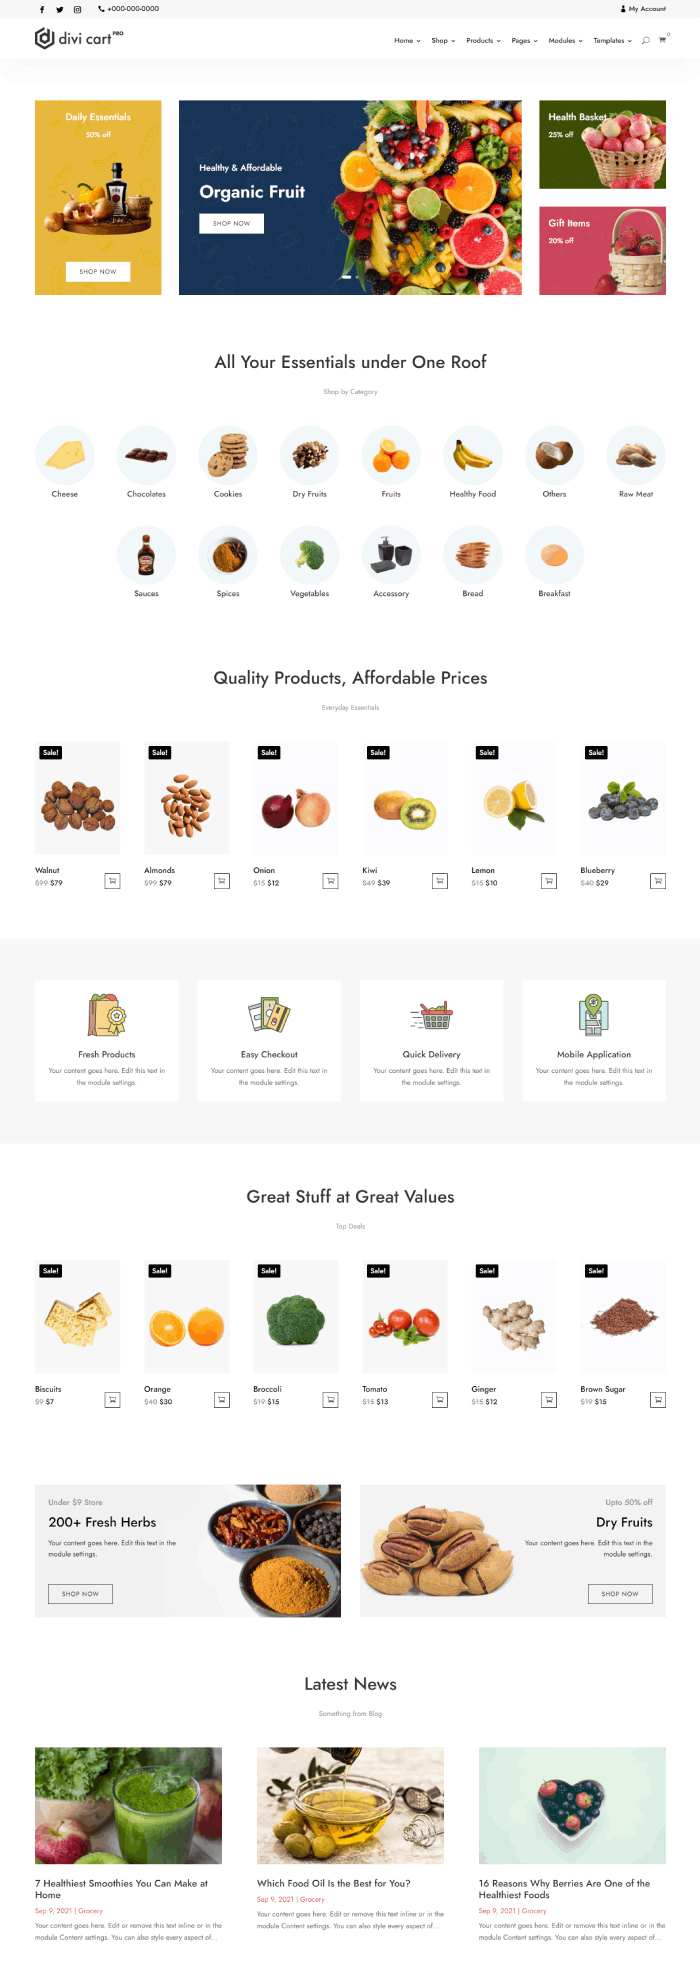 Divi Cart Pro Grocery homepage